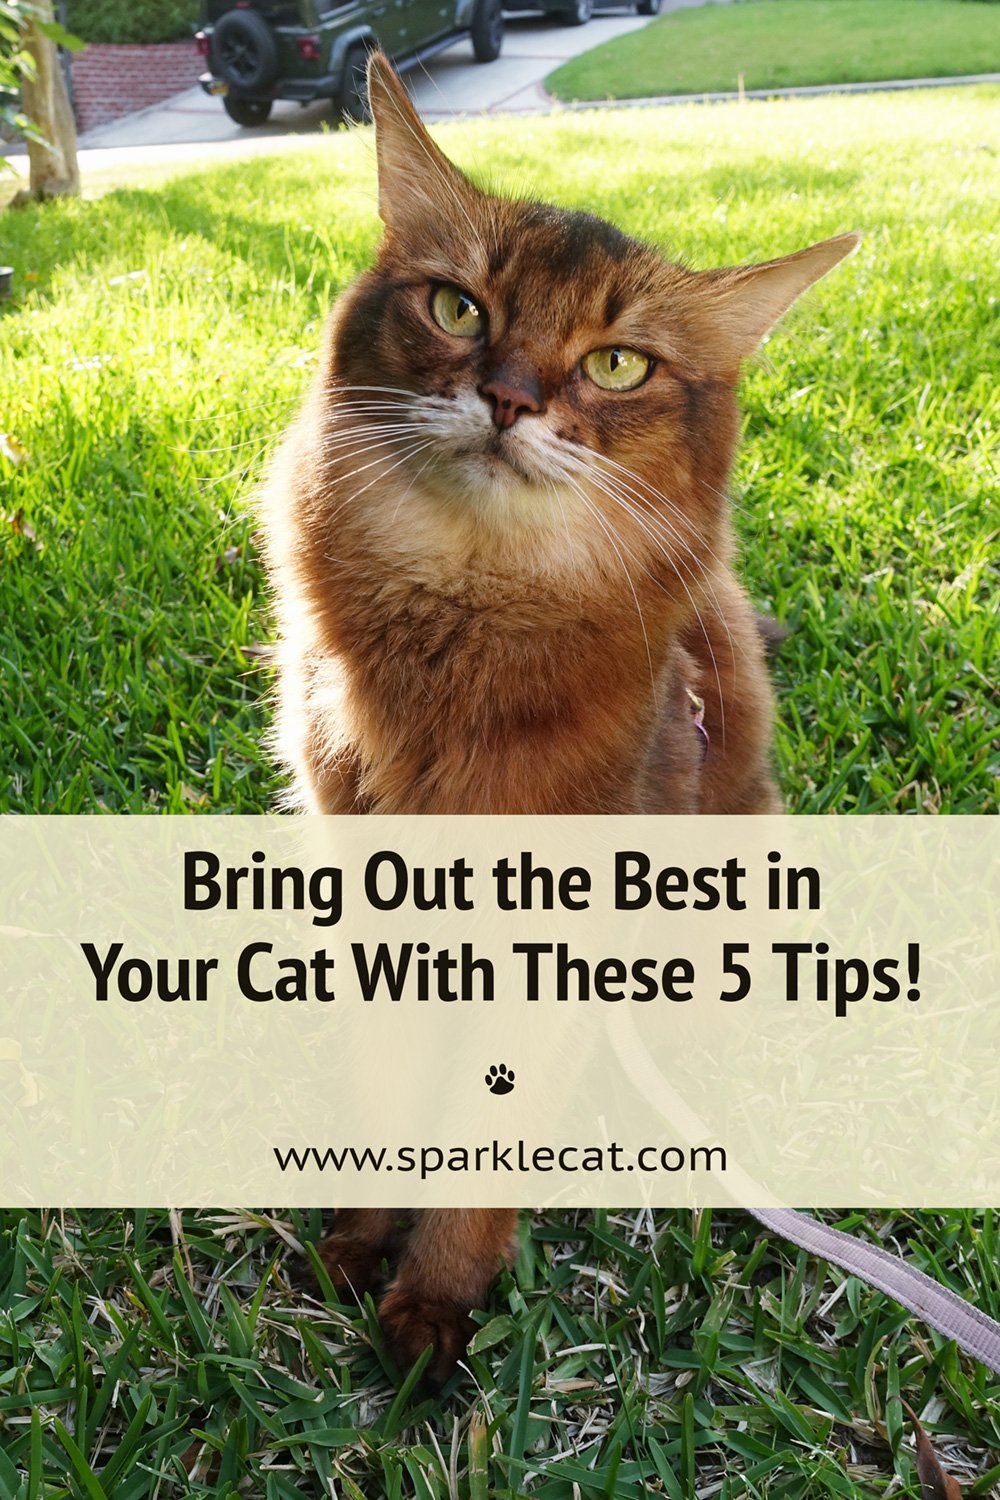 How to Bring Out the Best in Your Cat